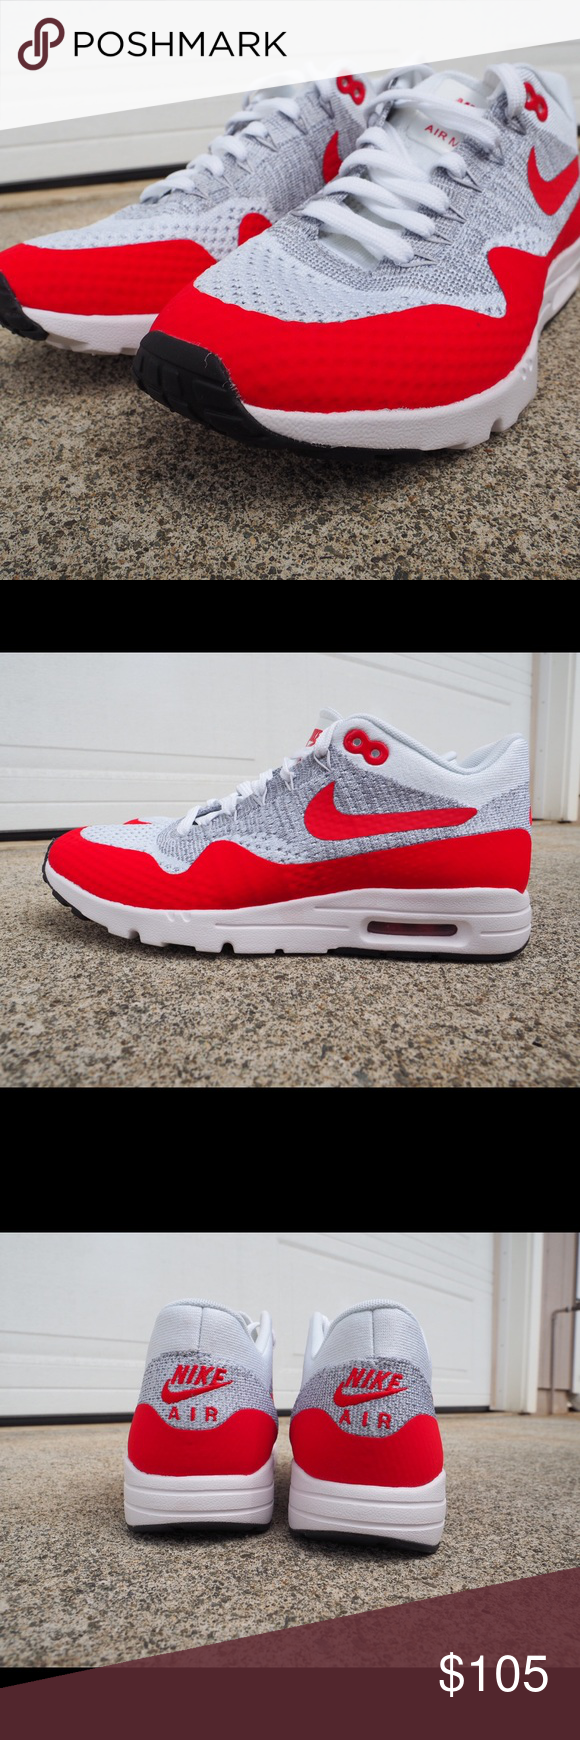 Nike Air Max 1 Ultra Flyknit Womens SZ 8 White Red Air max, Shoes